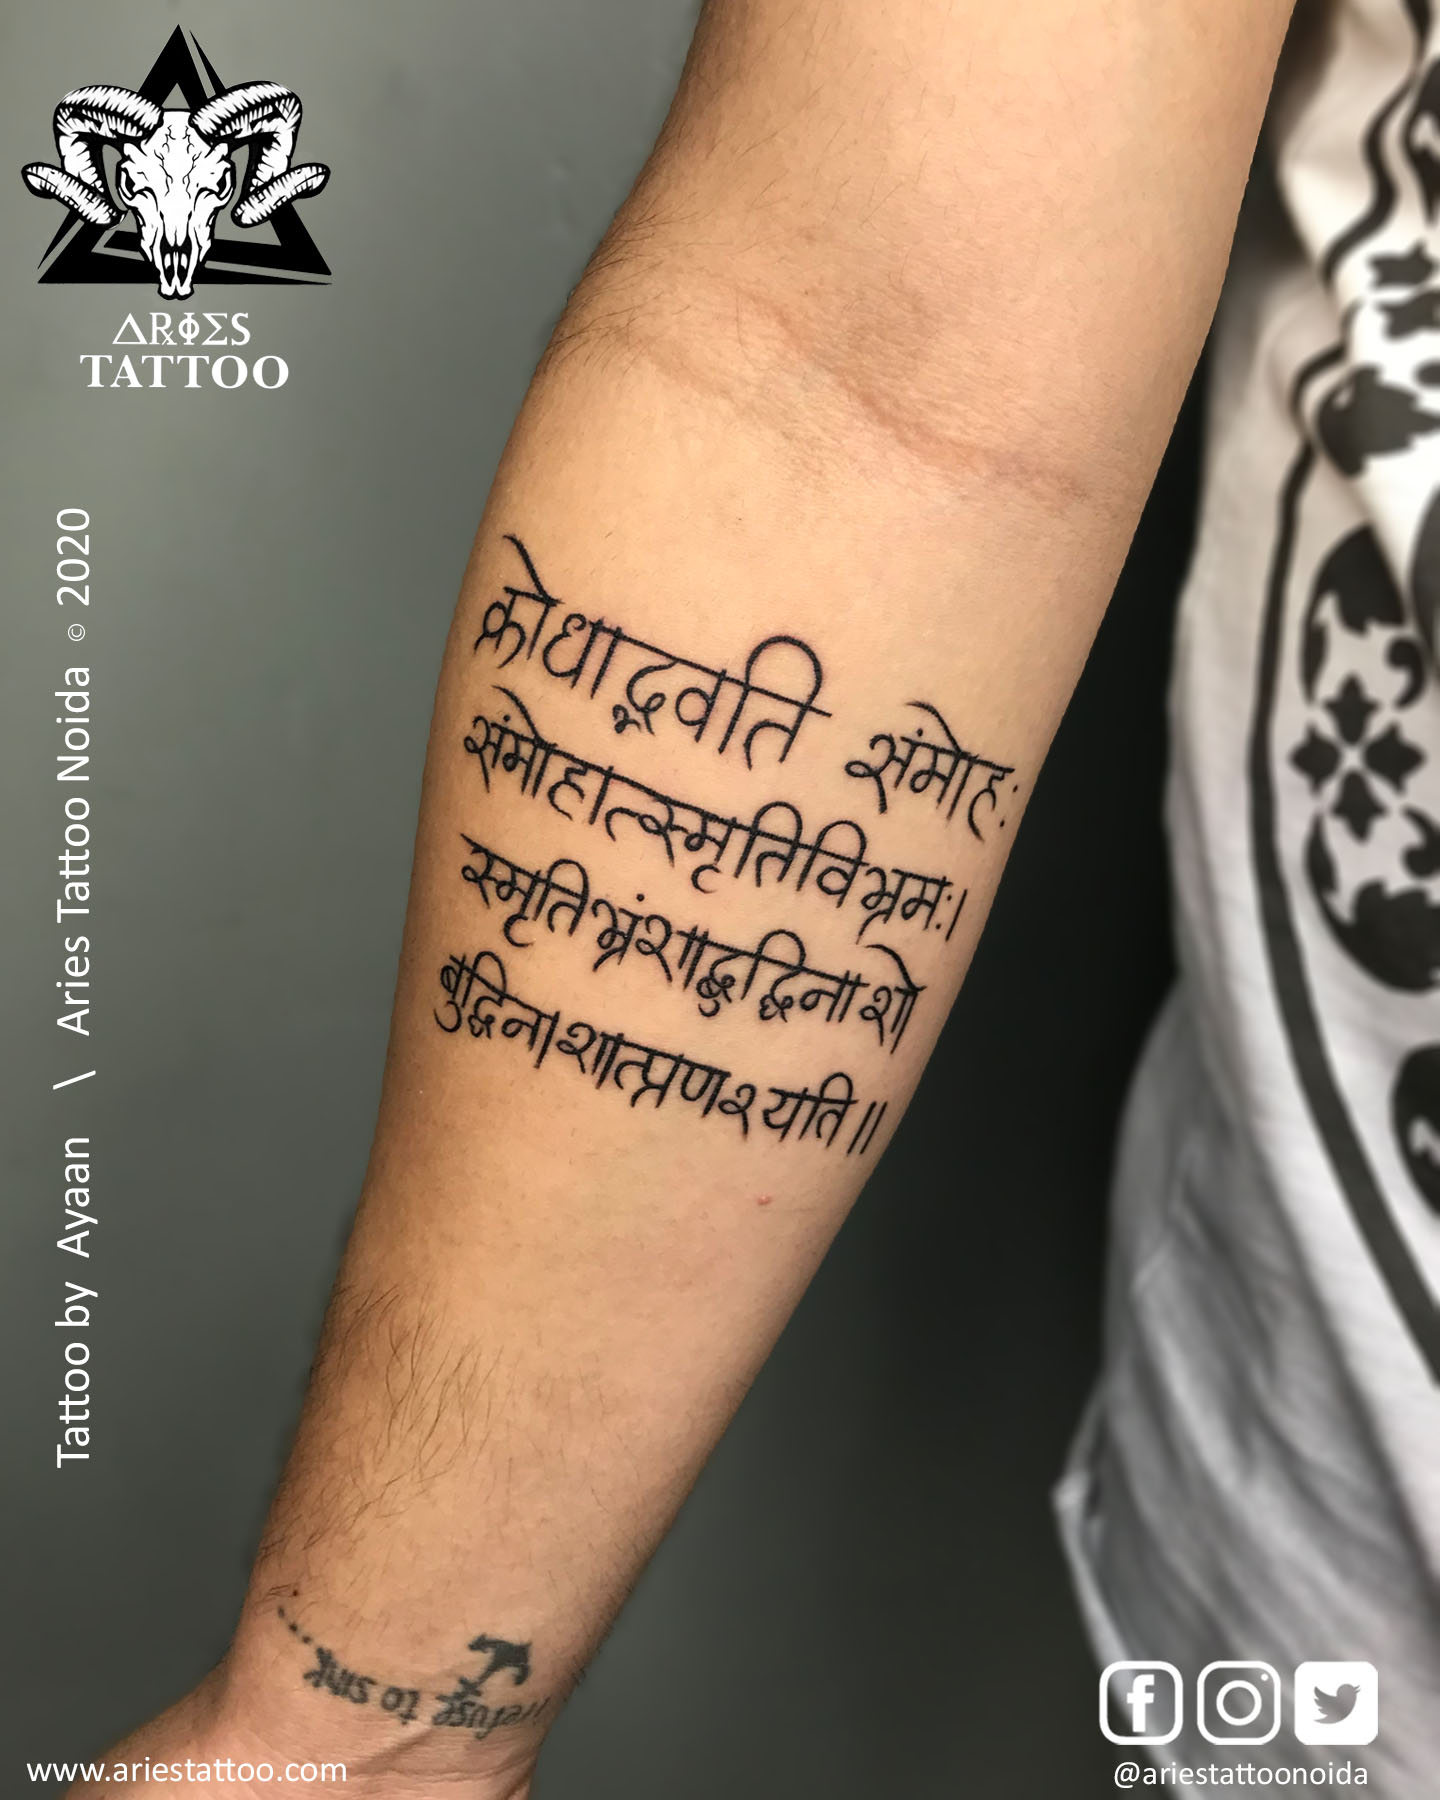 sanskrit shlok tattoo_ayaan_ariestattoonoida | |Aries Tattoo Noida | Tattoo Shop and Studio In Noida